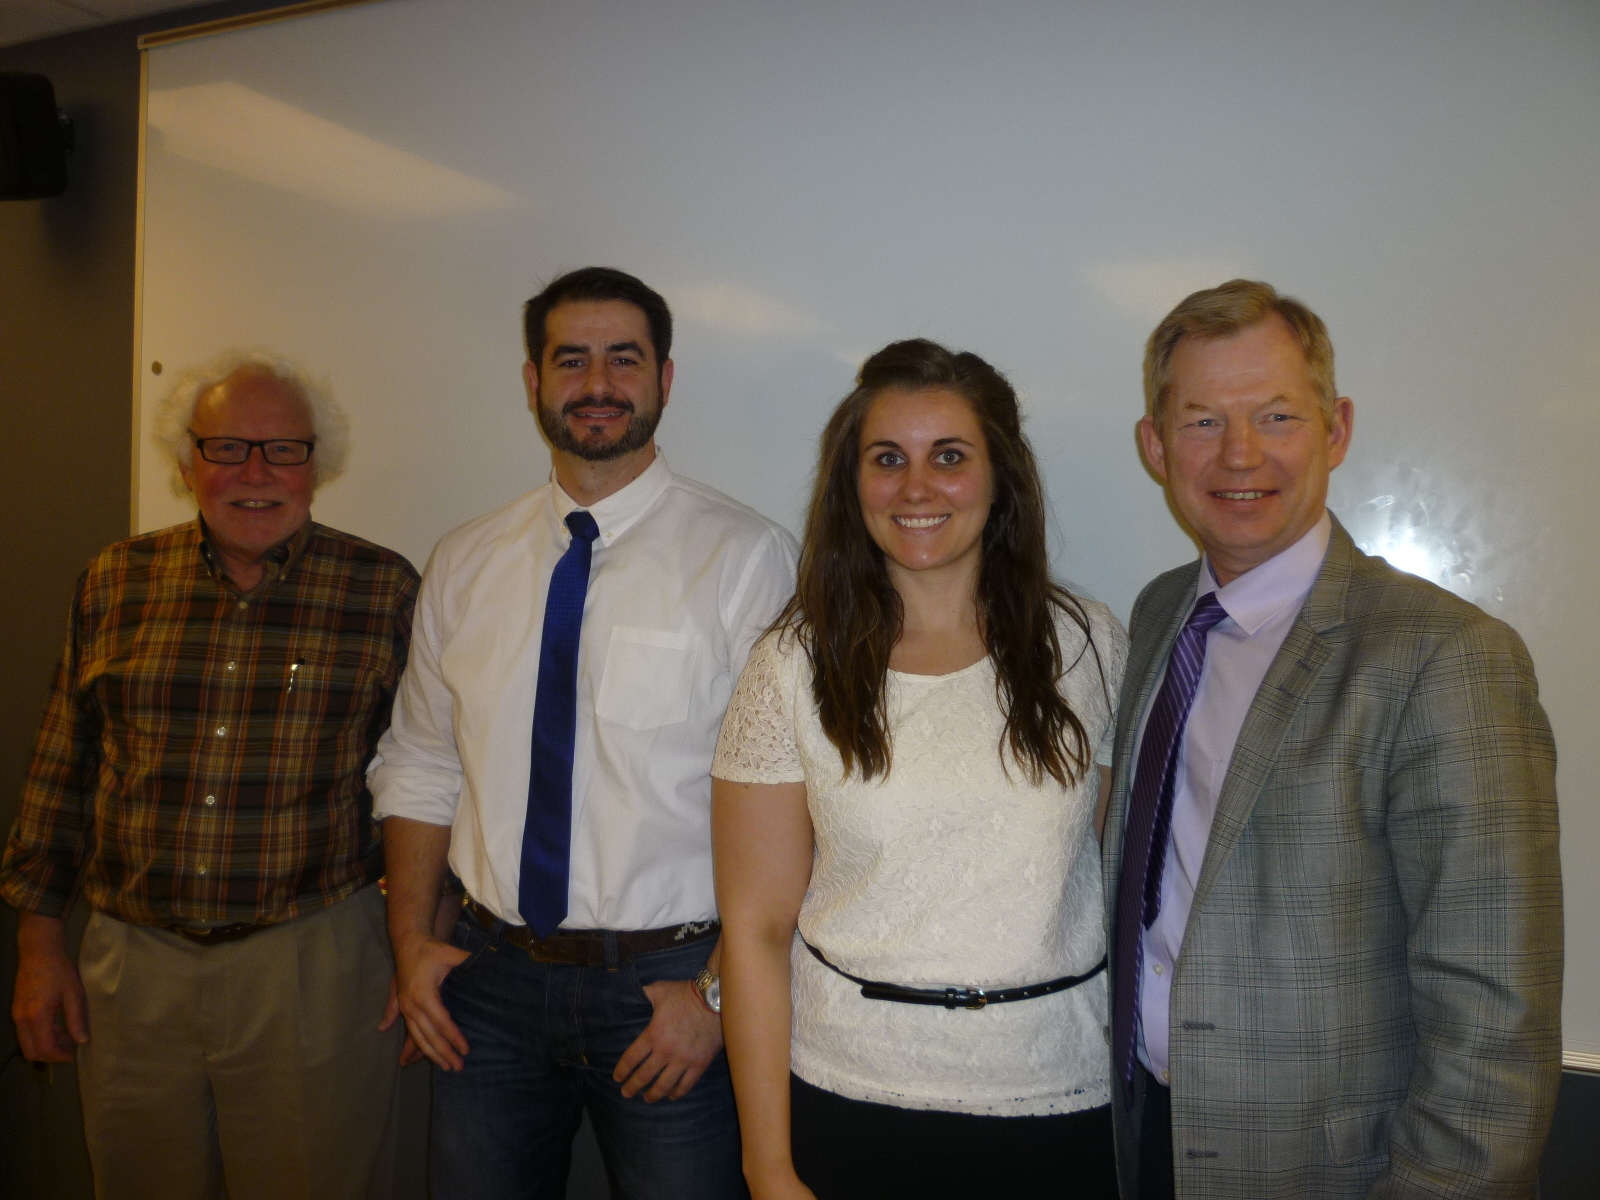 Jessica with her Master's thesis committee after her successful defense on April 14.